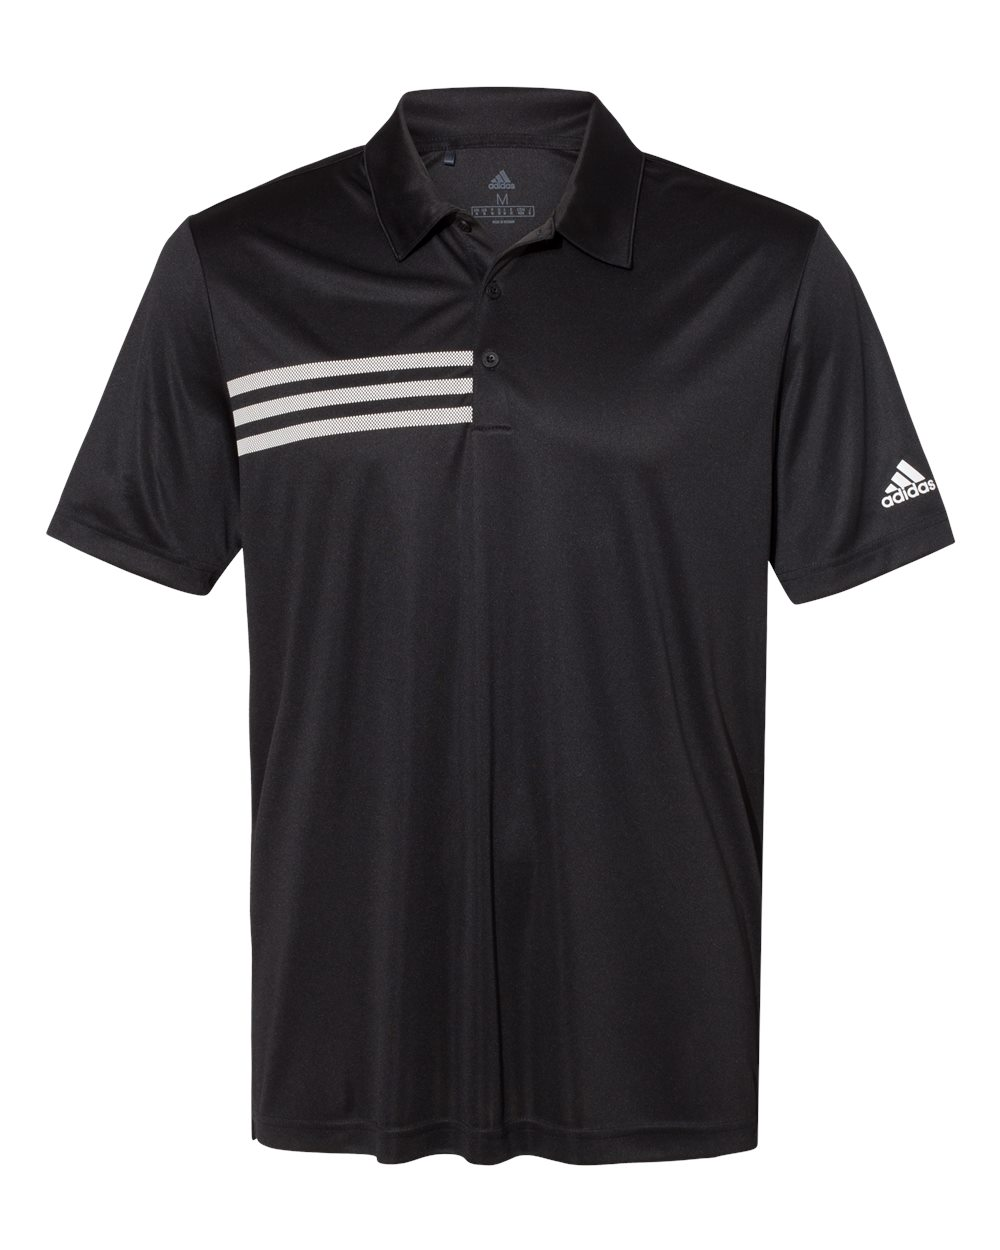 Adidas A324 - 3-Stripes Chest Sport Shirt